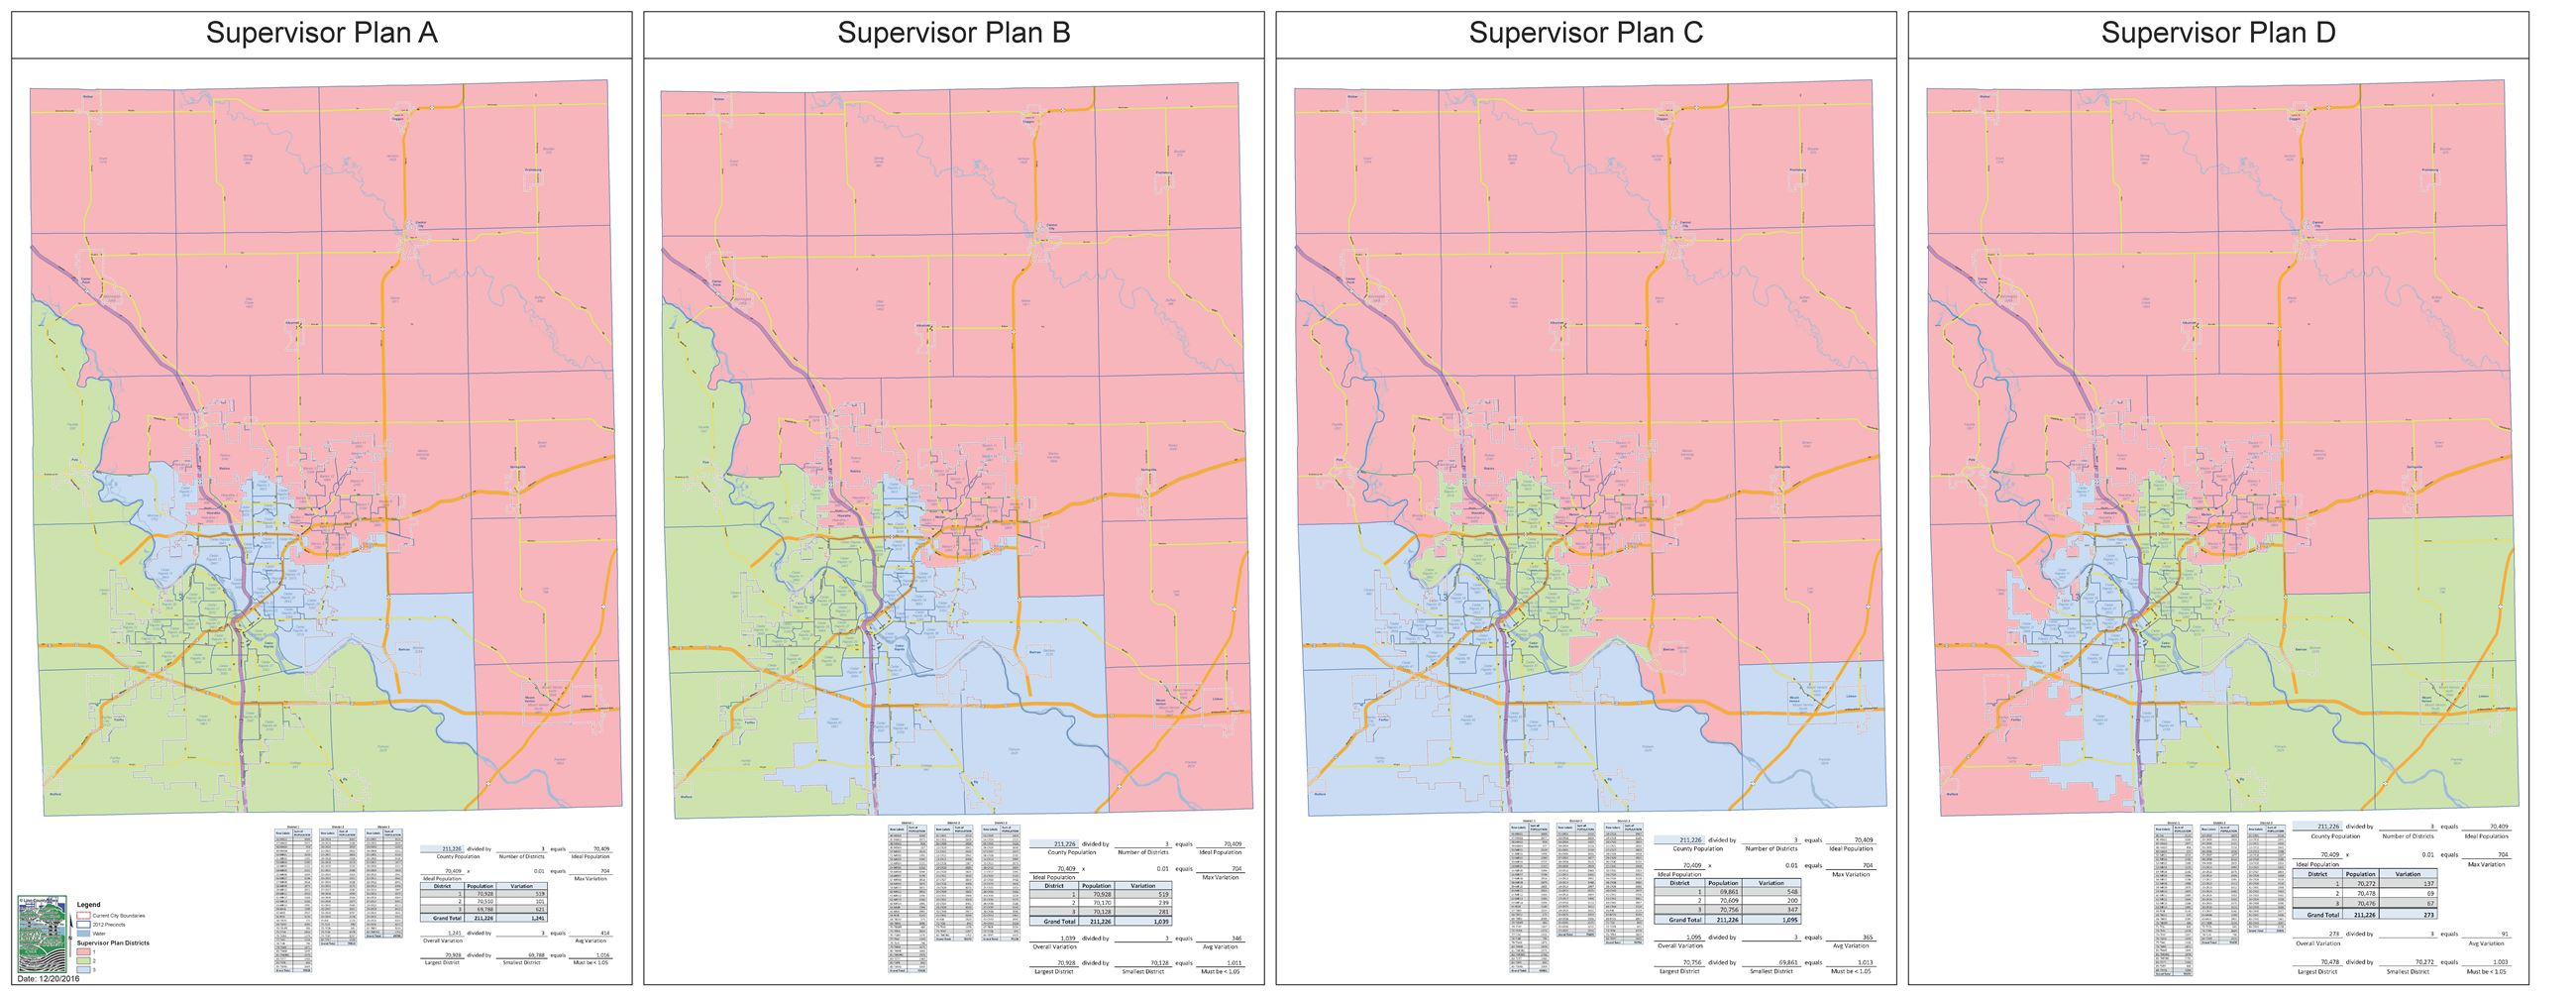 Supervisor Plans: Moving from 5 to 3 Supervisors in a Plan 3 County